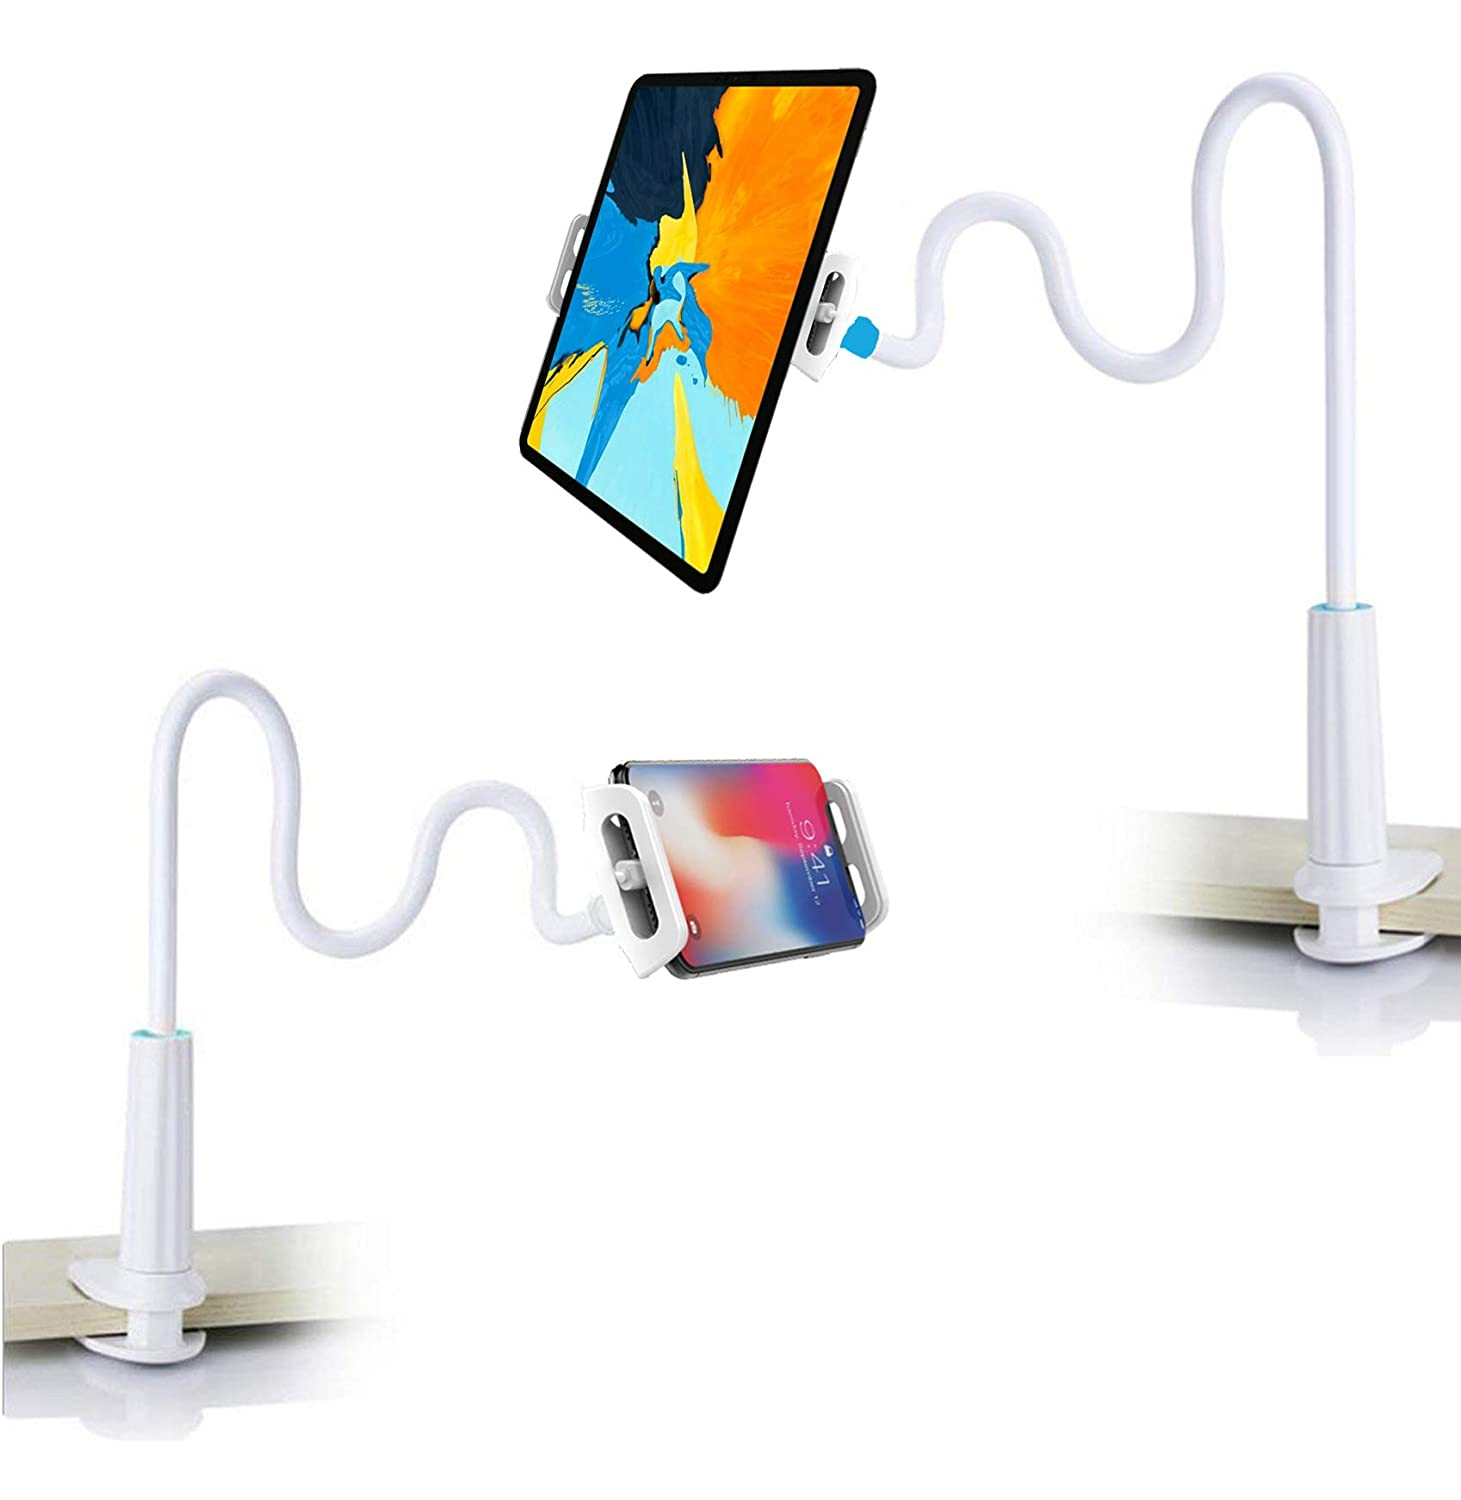 Universal Mobile Phone Holder and Tablet Holder with 360° Rotation